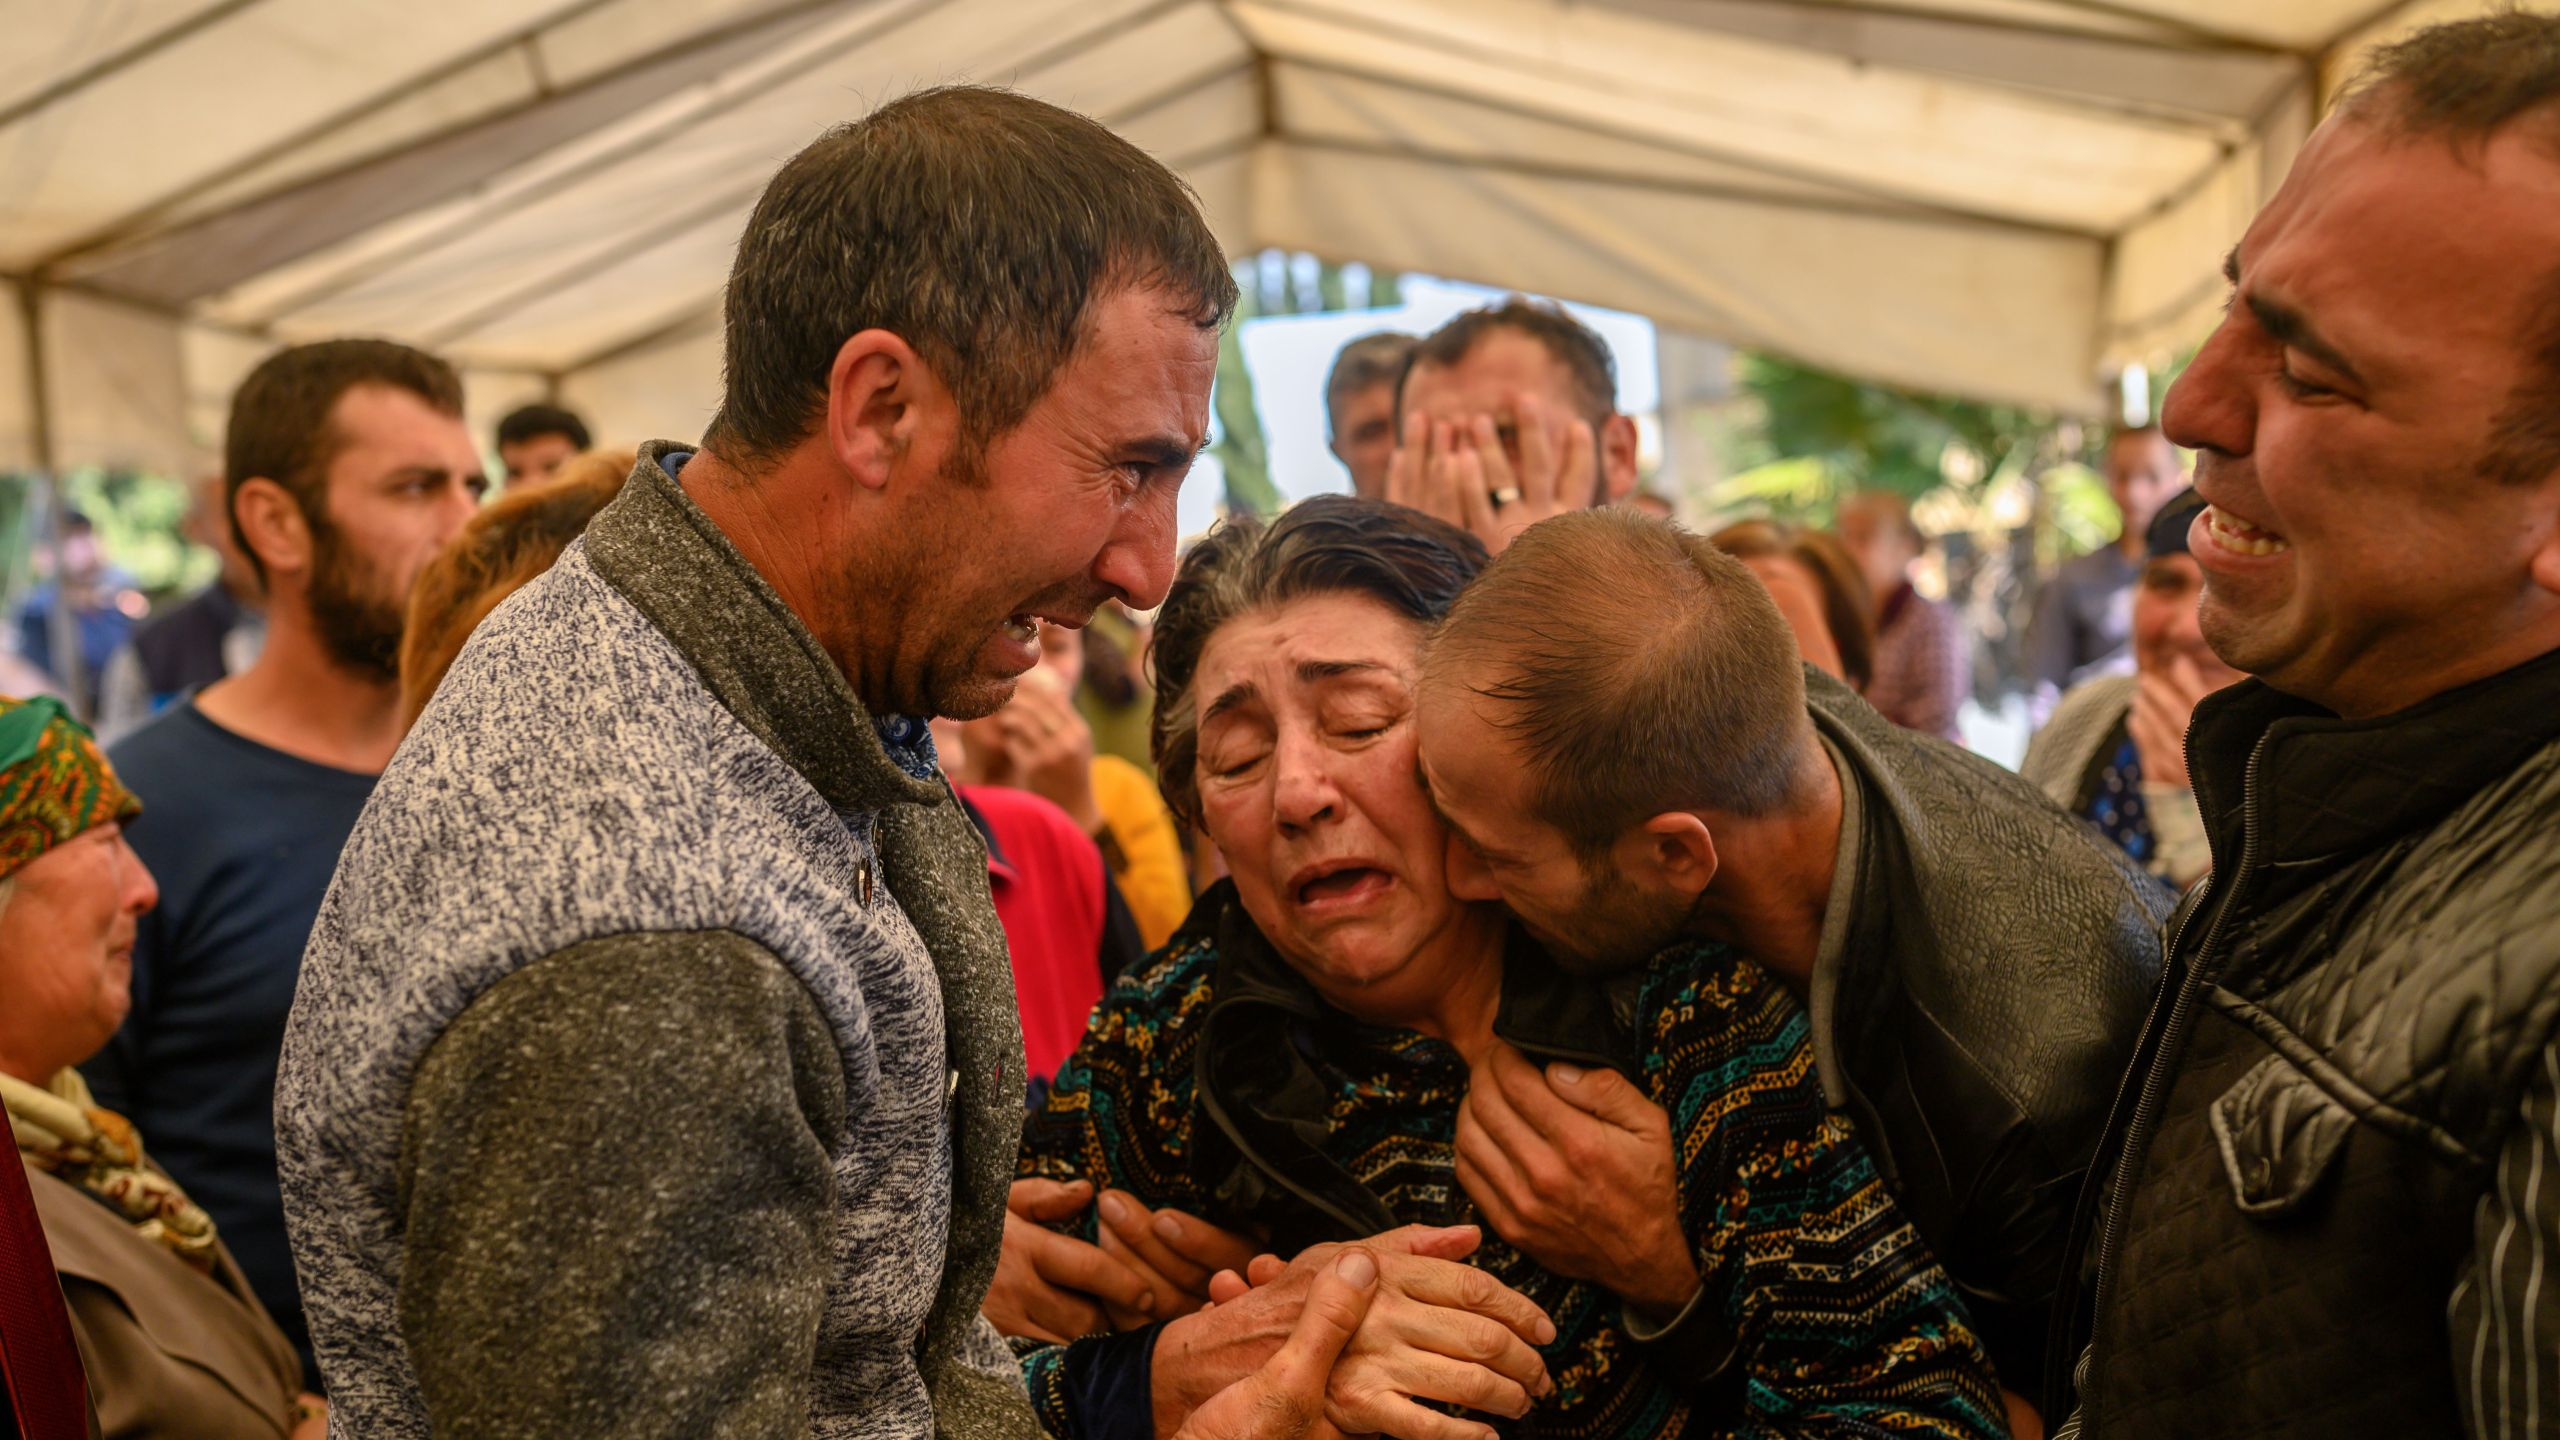 Relatives of Royal Sahnazarov, his wife Zuleyha Sahnazarova and their daughter Medine Sahnazorava, who were killed when a rocket hit their home, mourn during their funeral in the city of Ganja, Azerbaijan, on Oct. 17, 2020 during fighting over the breakaway region of Nagorno-Karabakh. (BULENT KILIC/AFP via Getty Images)